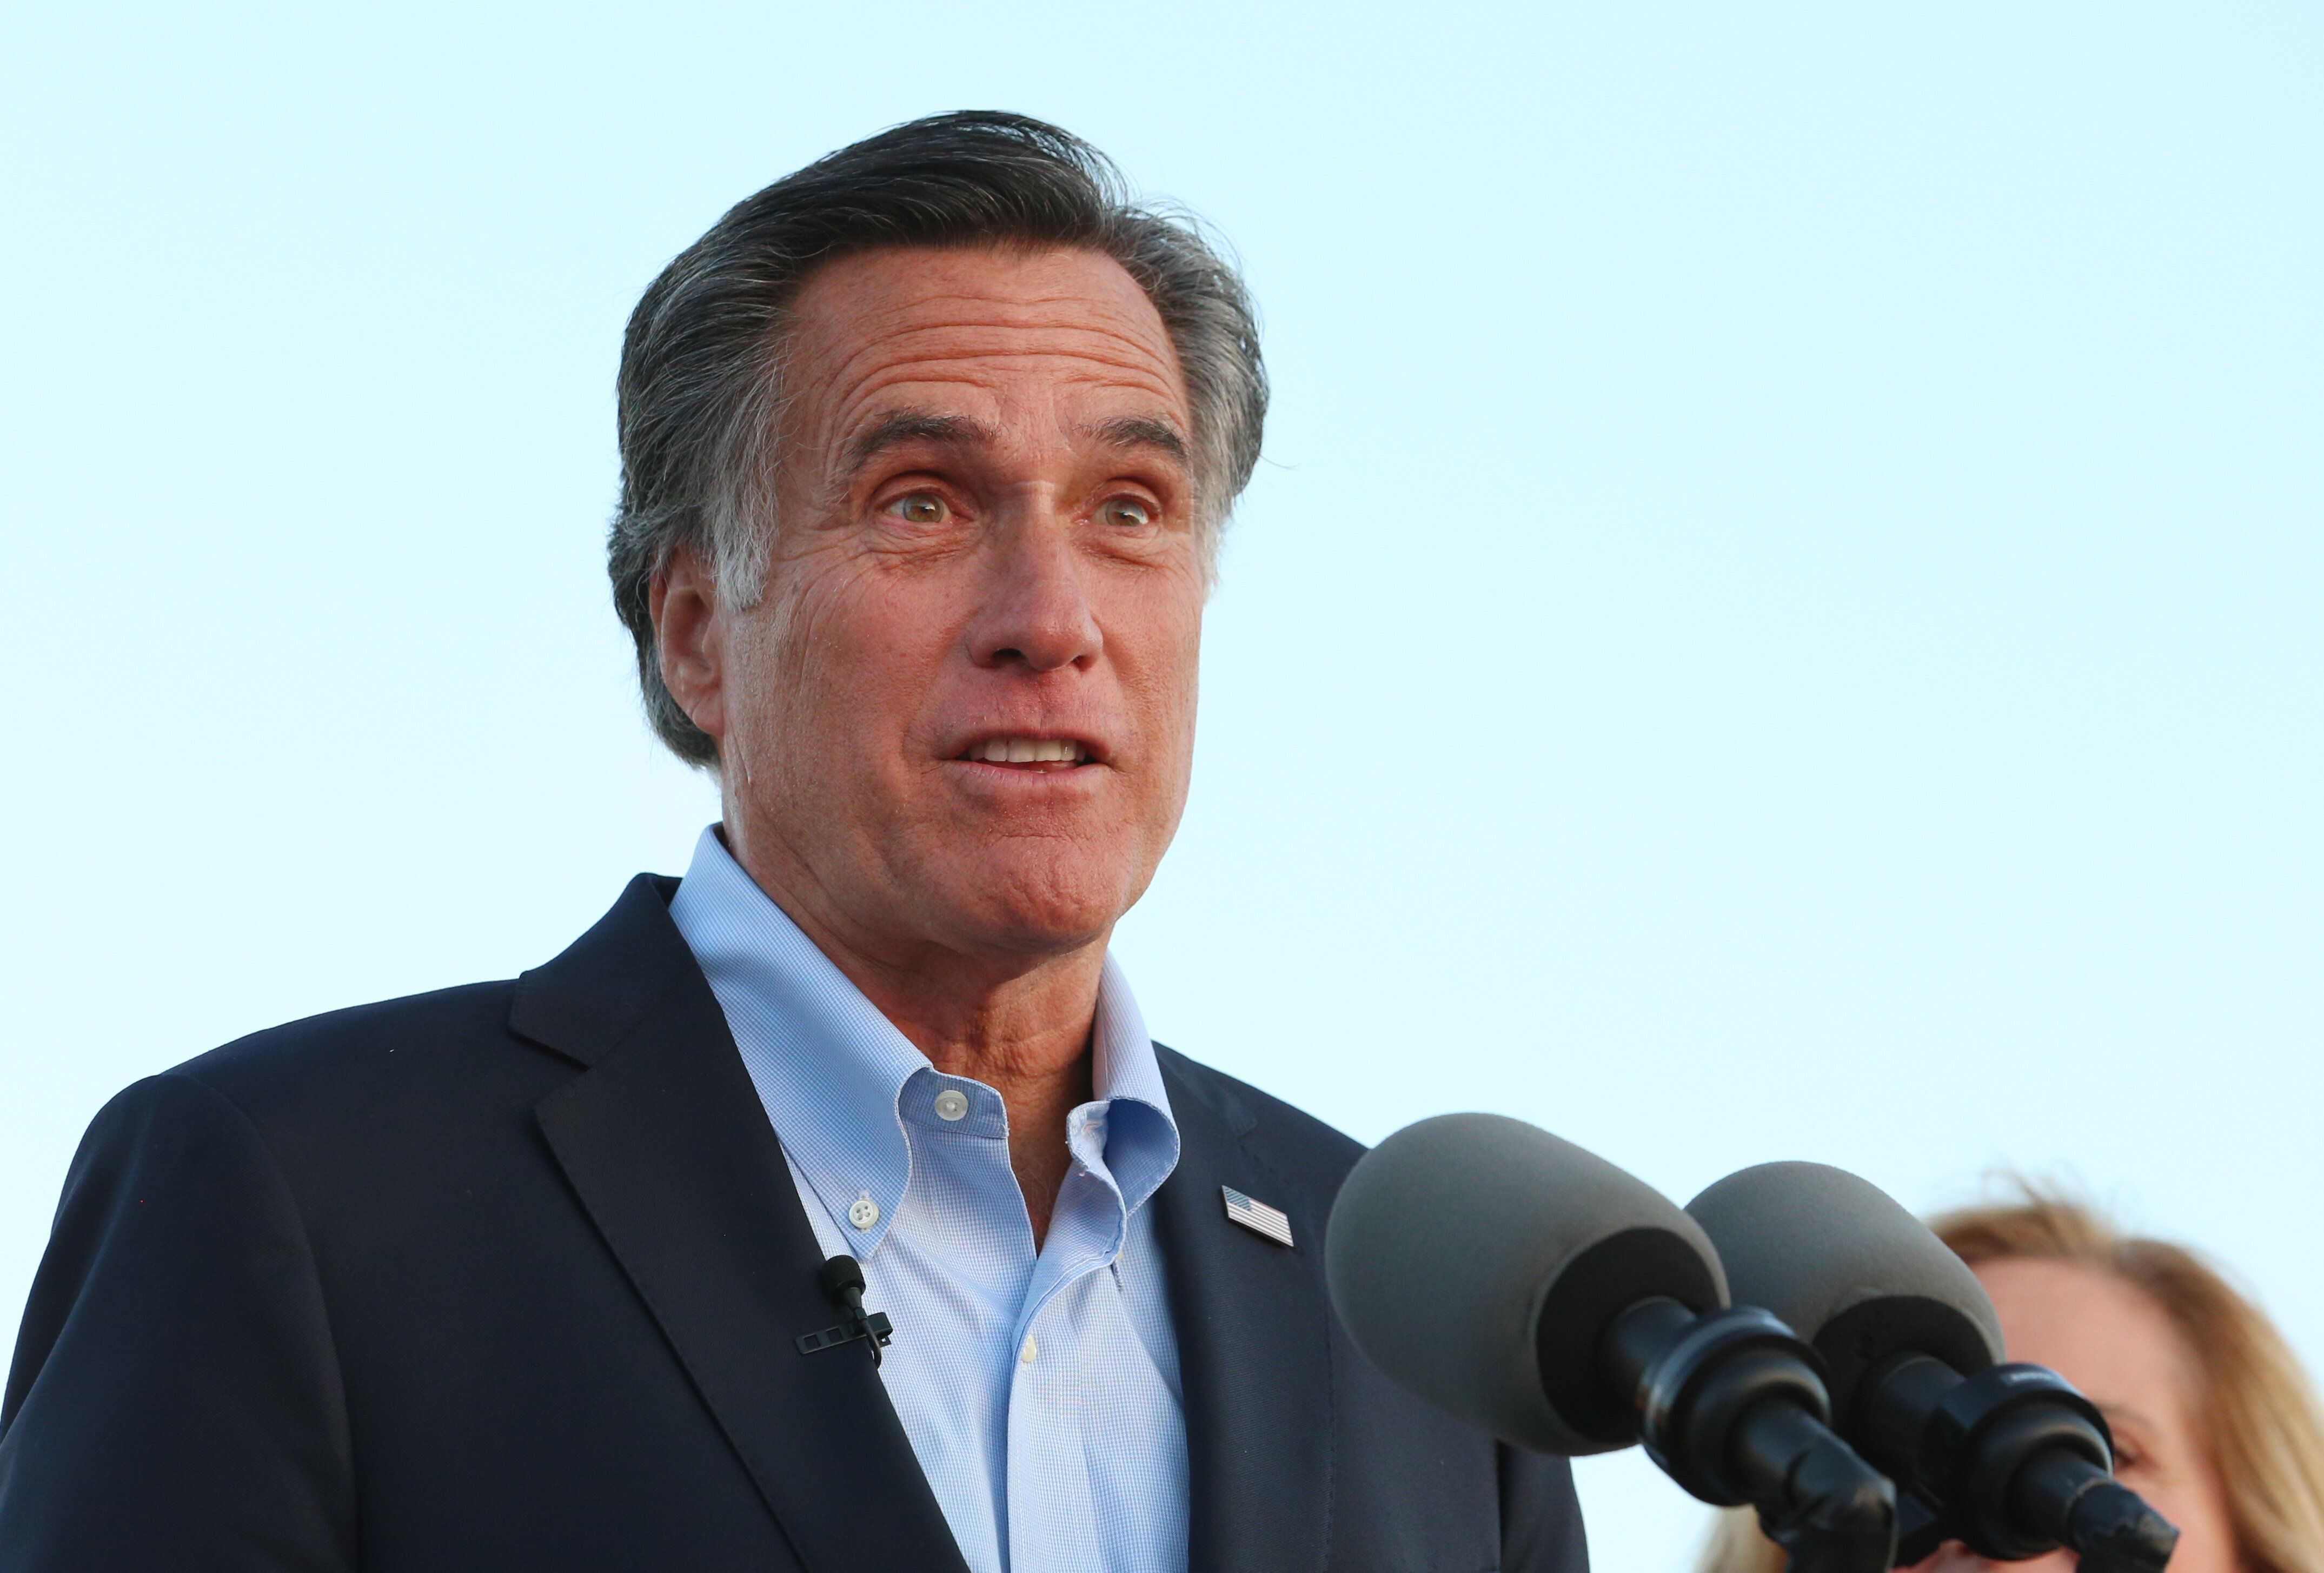 OREM, UT - June 26: Mitt Romney talks to supporters and declares victory on June 26, 2018 in Orem, Utah. Romney was declared the winner over his challenger Mike Kennedy in the Utah U.S. Senate seat of Senator Orin Hatch who is retiring.  (Photo by George Frey/Getty Images)